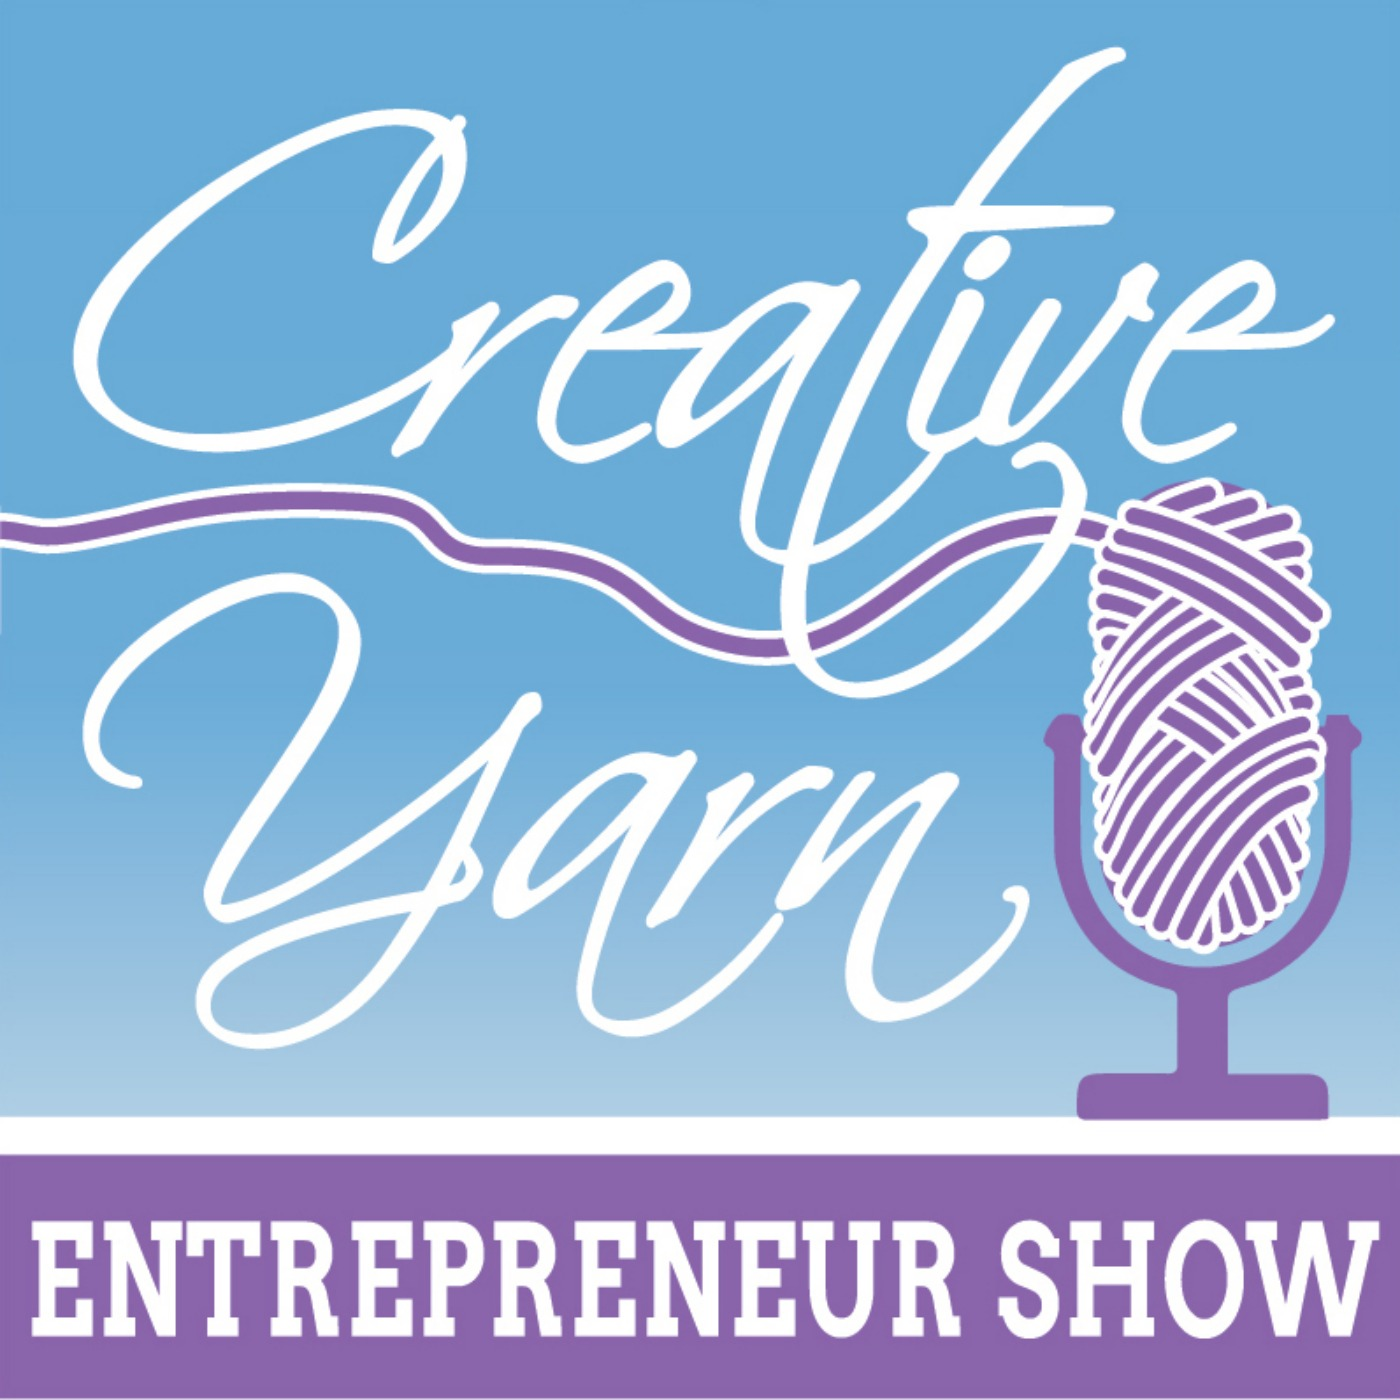 Episode 20: Thank You Card Challenge Update and Happy New Year! - The Creative Yarn Entrepreneur Show